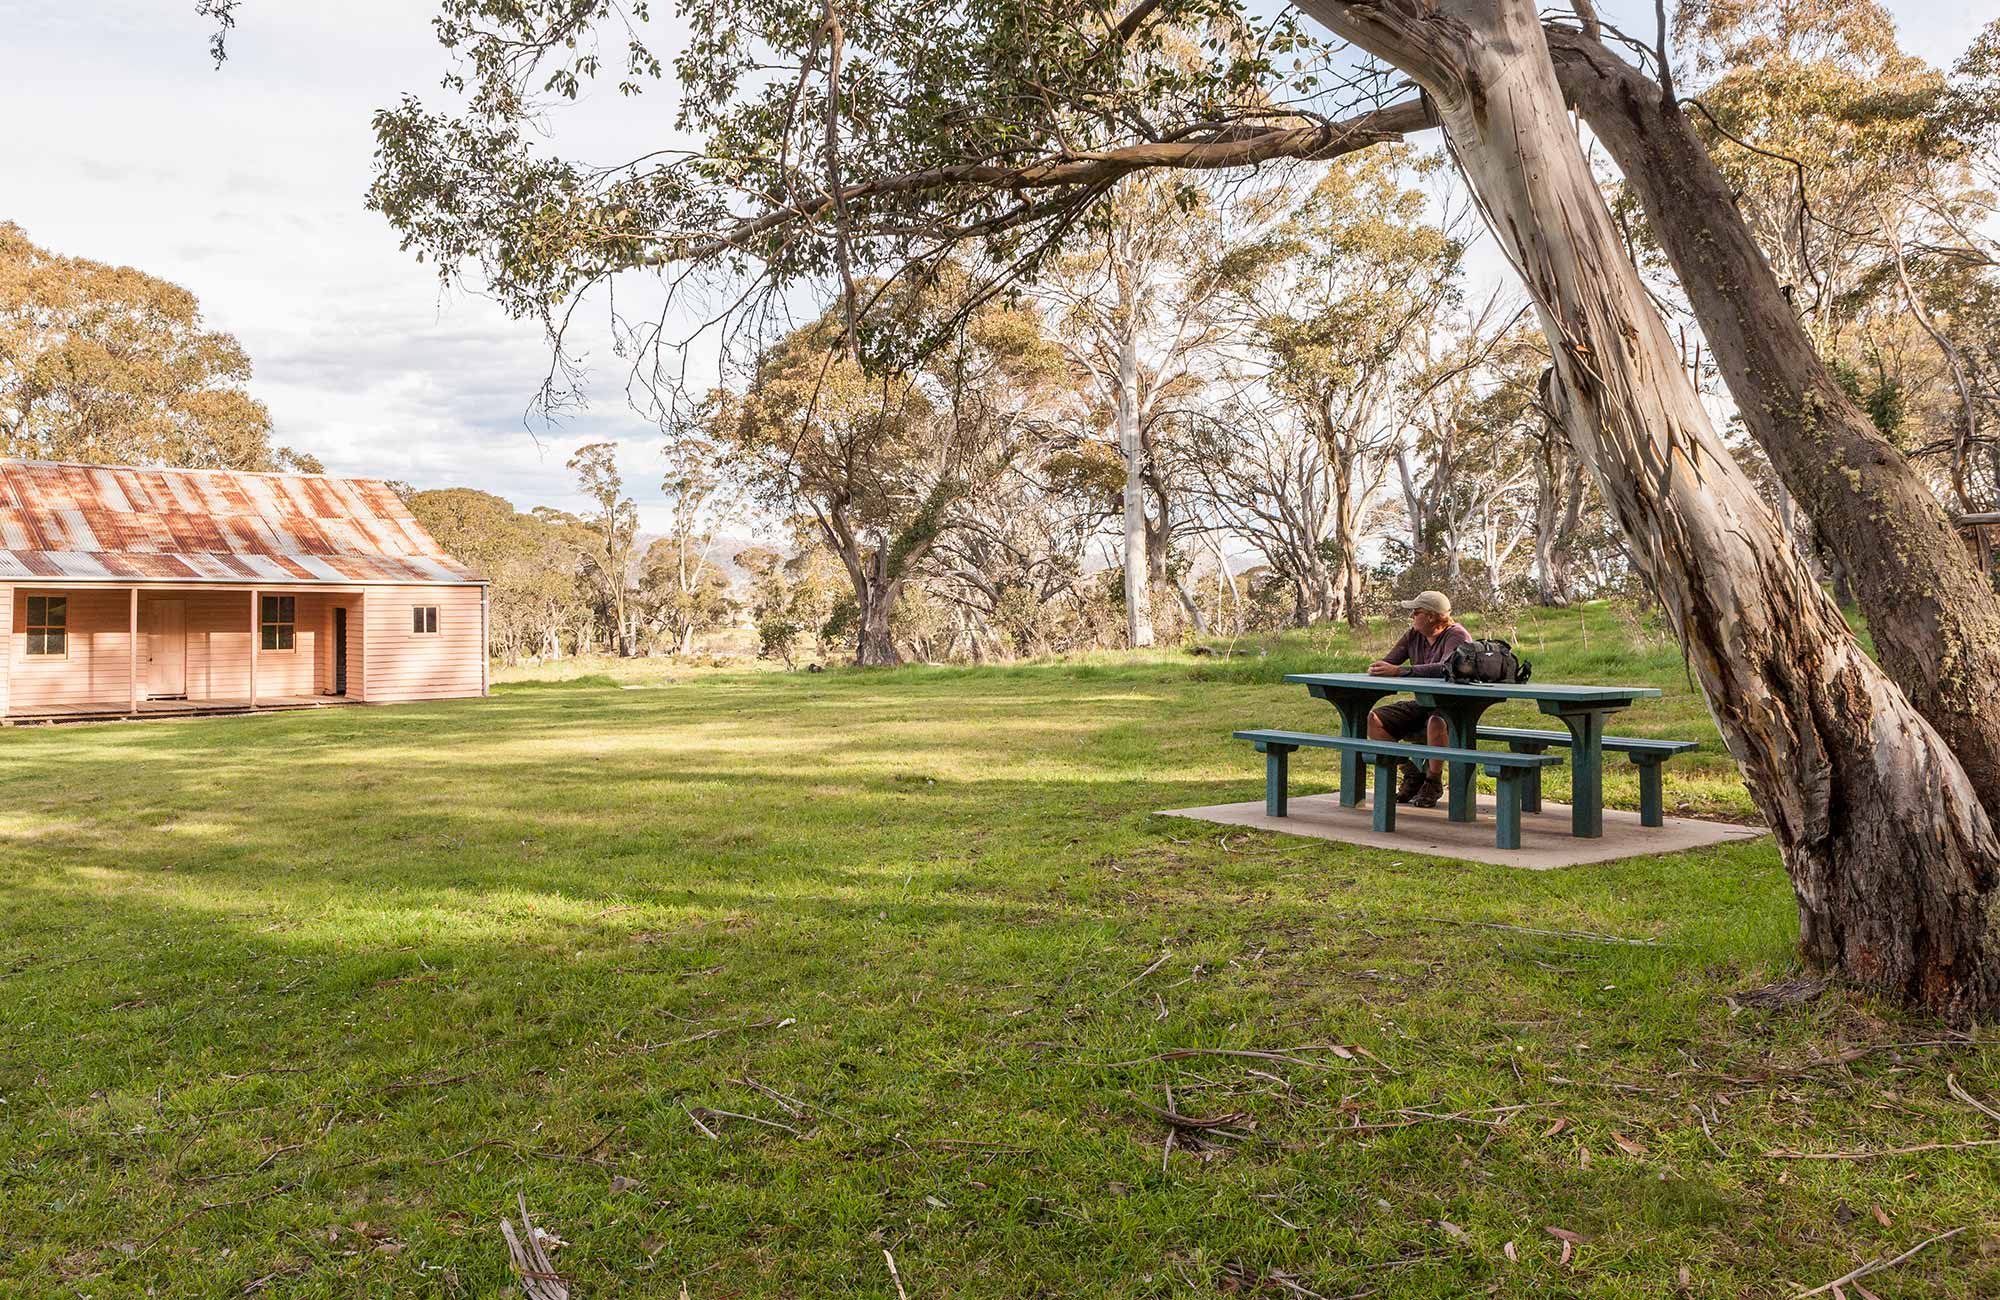 A man sits at a picnic table outside Long Plain Hut, High Plains area, Kosciuszko National Park. Photo: Murray Vanderveer